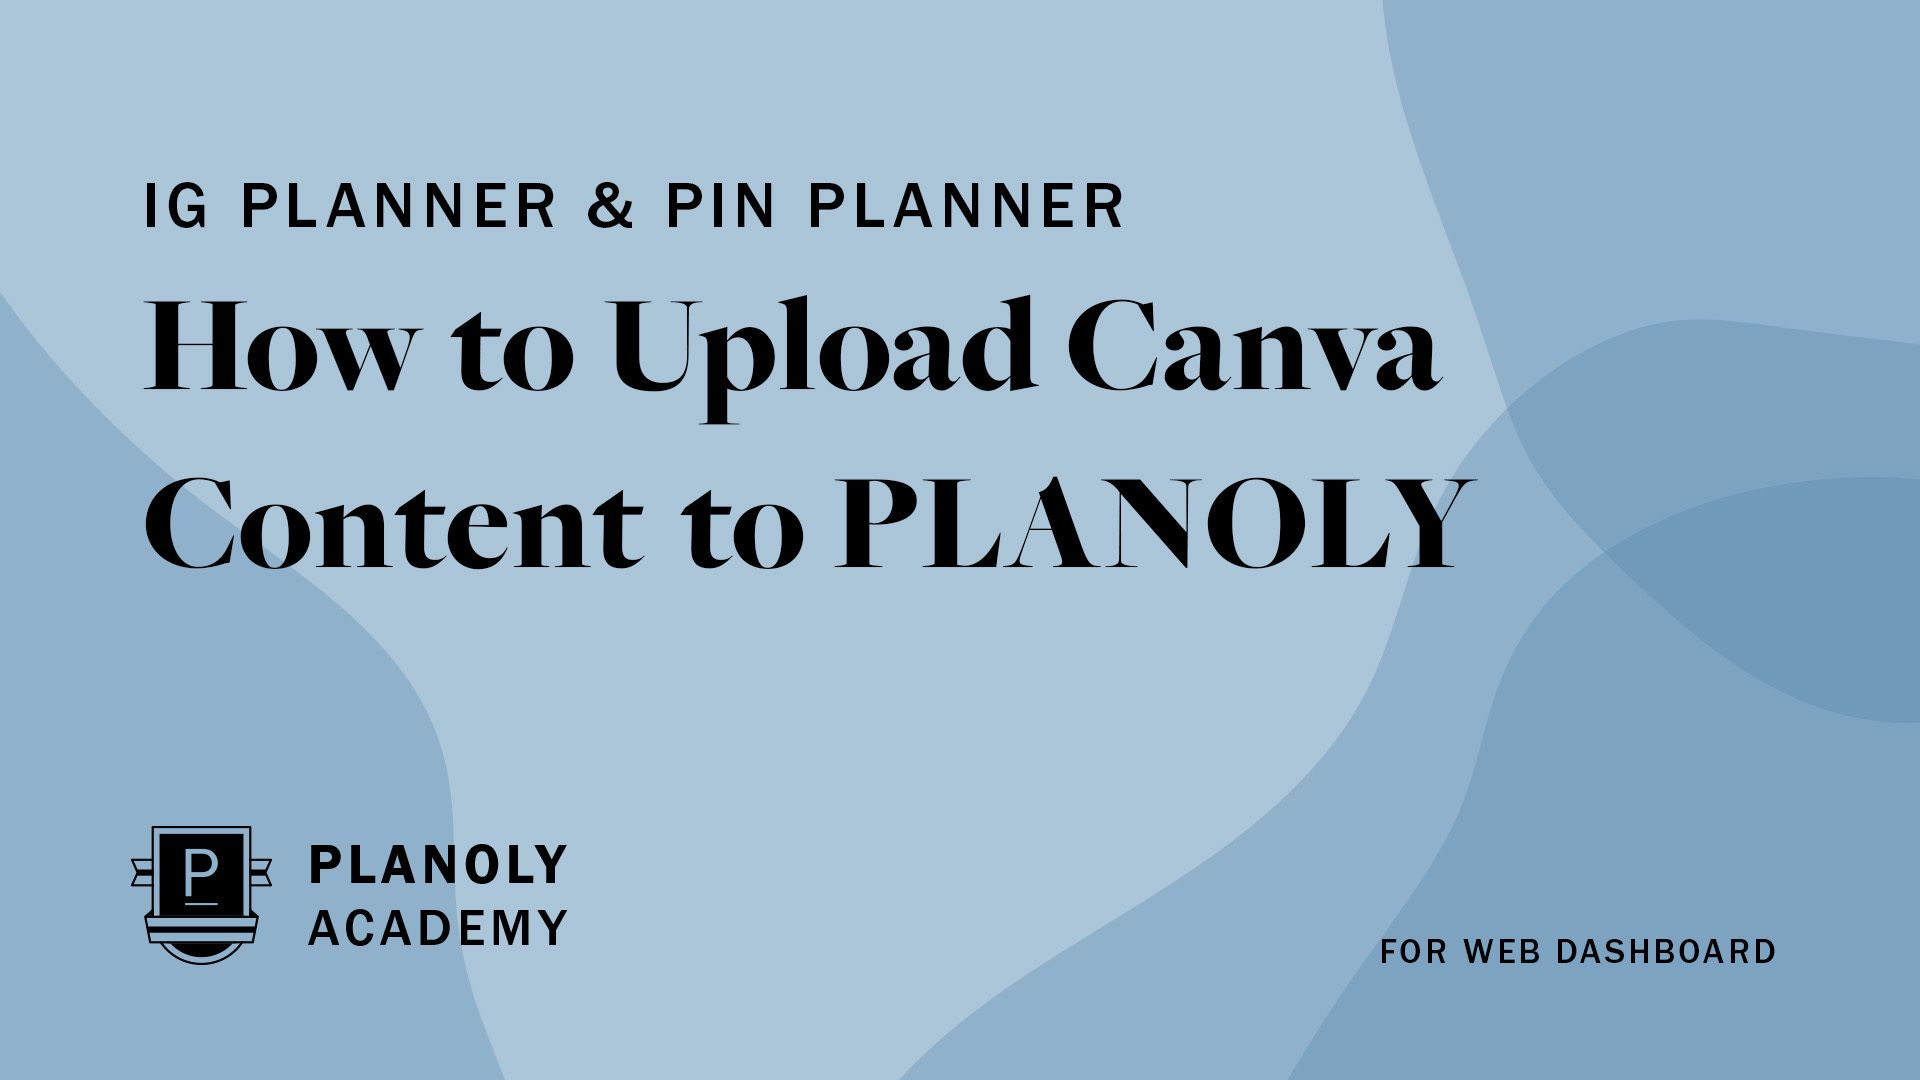 How to Upload Canva Content to PLANOLY